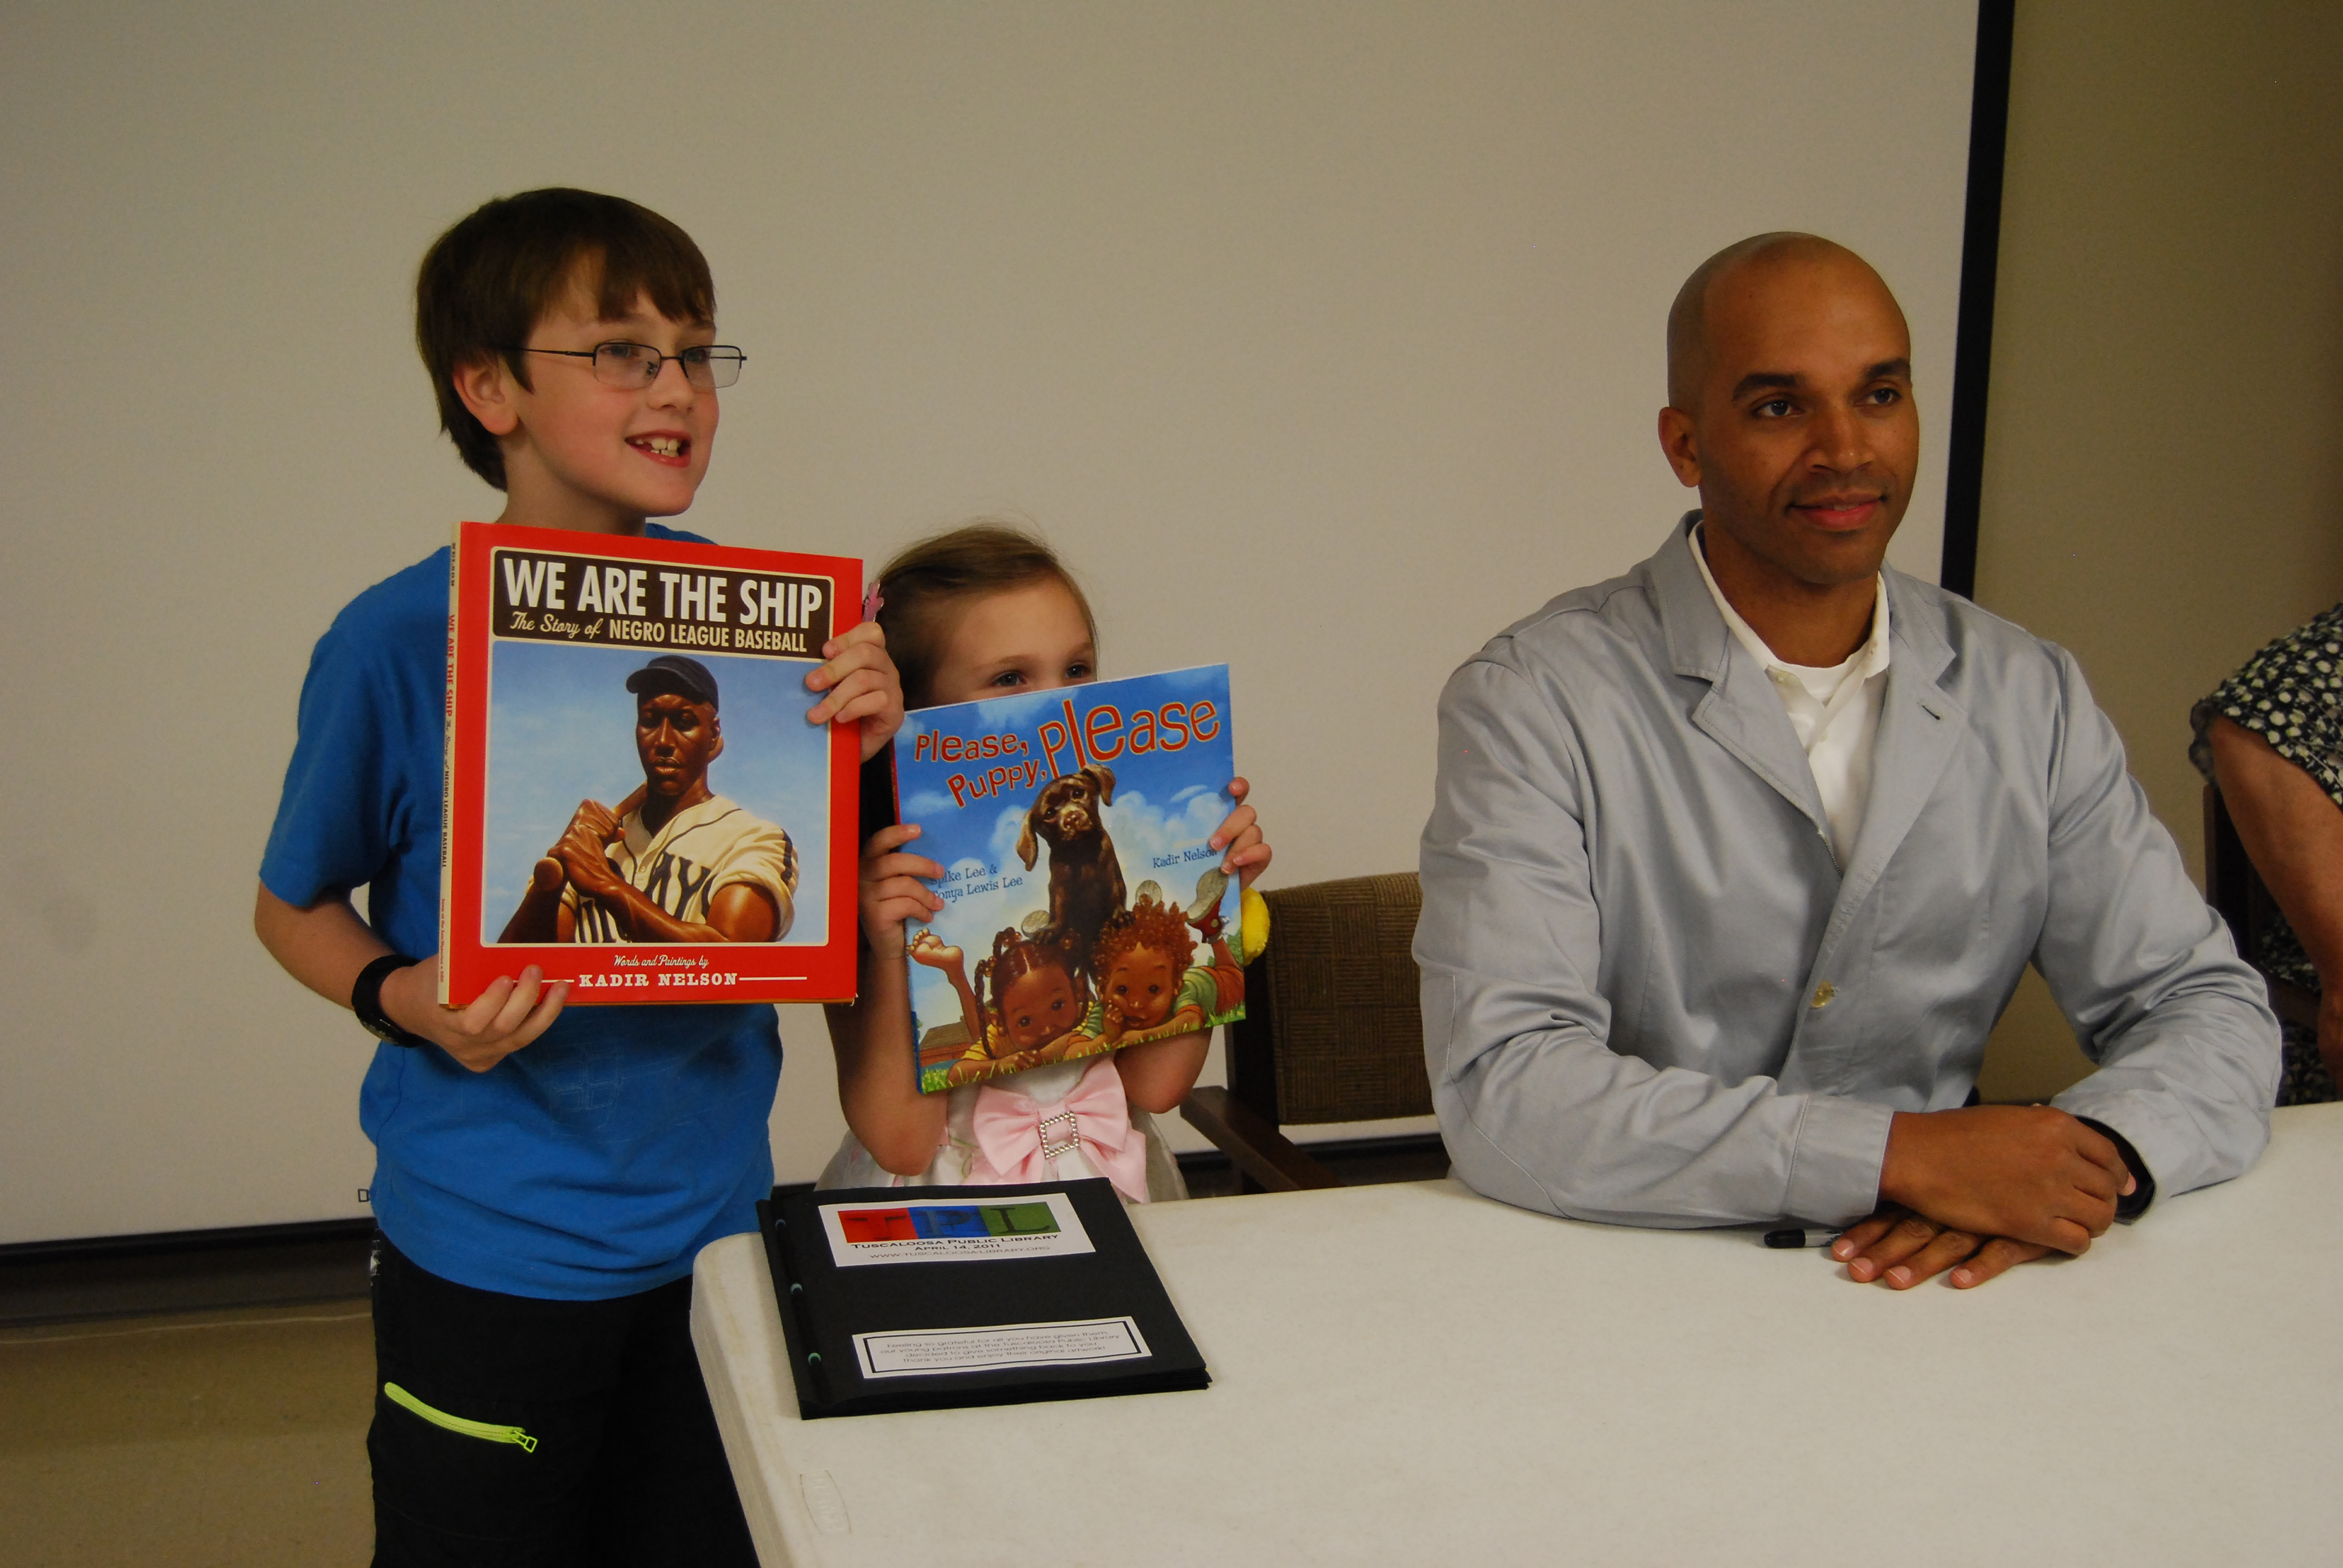 Award-winning author and illustrator Kadir Nelson joins (from left) Blaine and Kyra Richardson during a book signing at Tuscaloosa (Ala.) Public Library's main branch.